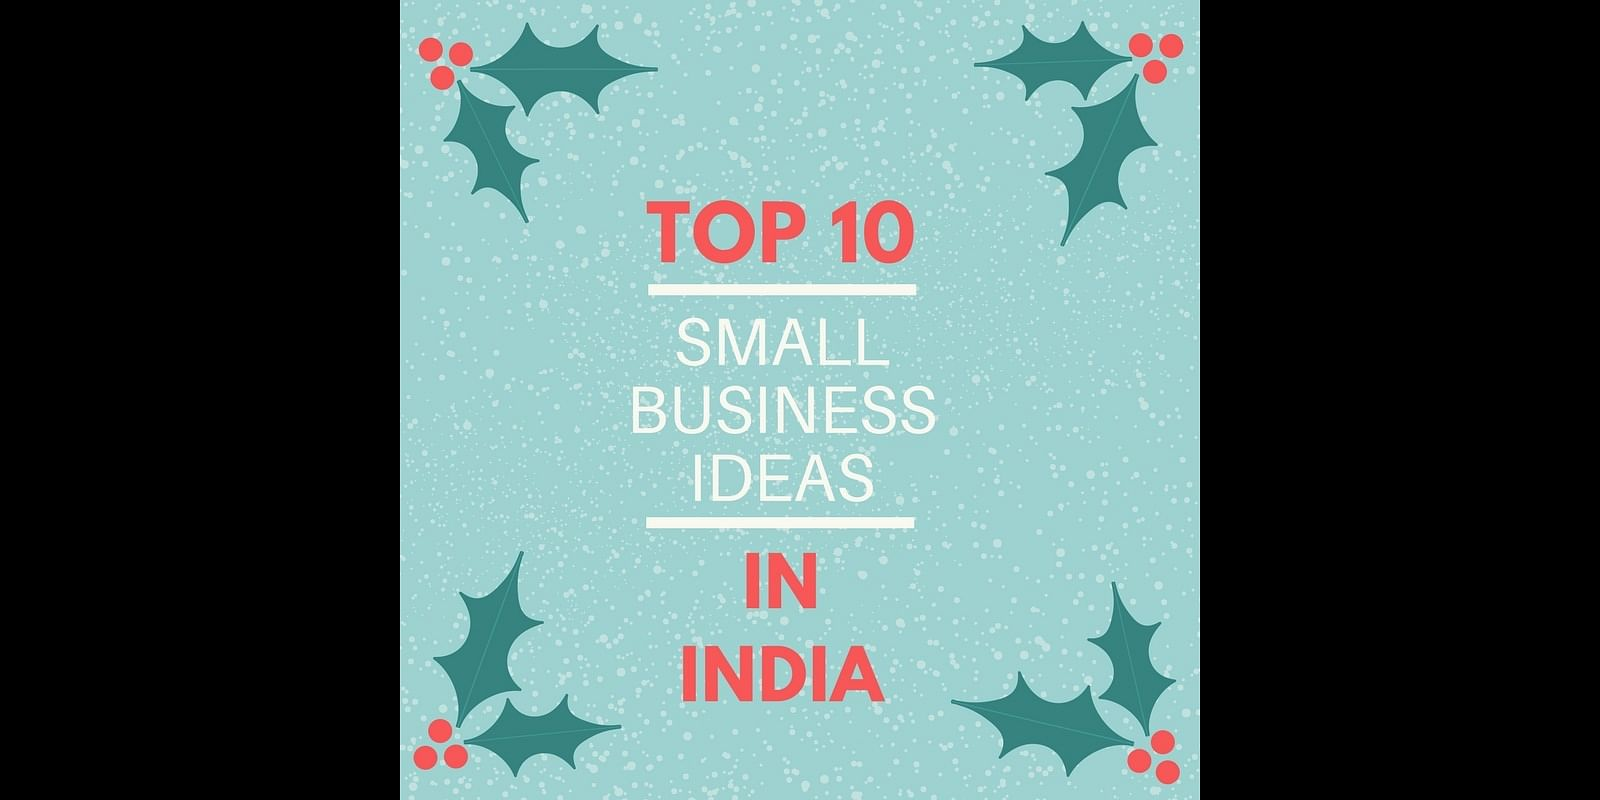 Top 10 new business ideas